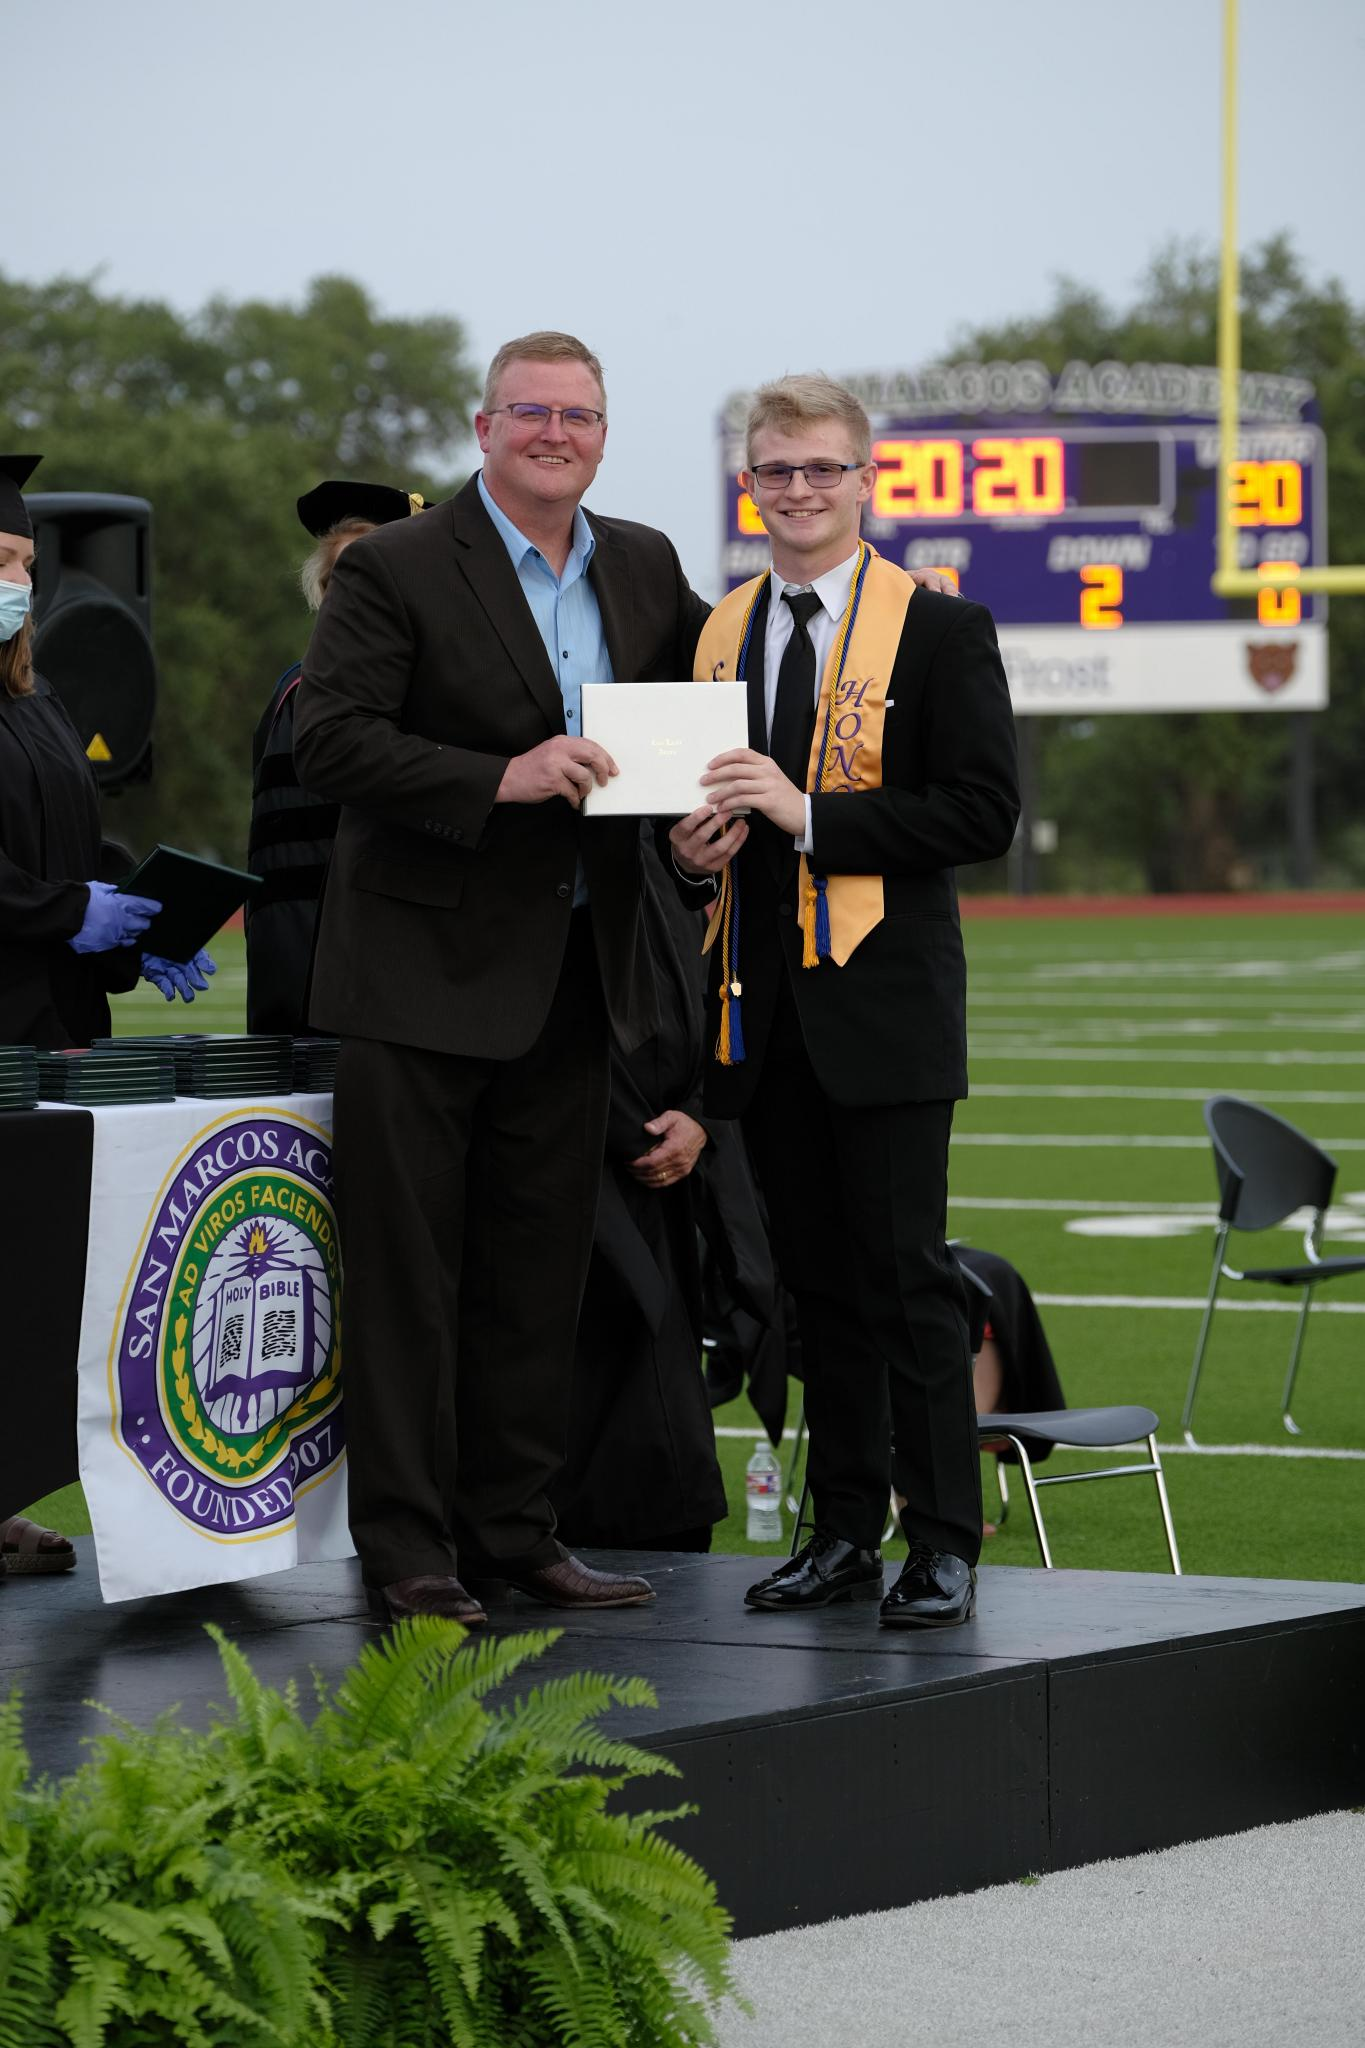 Austin Lee receives his cum laude diploma from his father, Dr. Lane Lee, a member of the Academy's Board of Trustees. Lee will attend Trinity University in San Antonio this fall to study engineering science and run track for the Tigers.